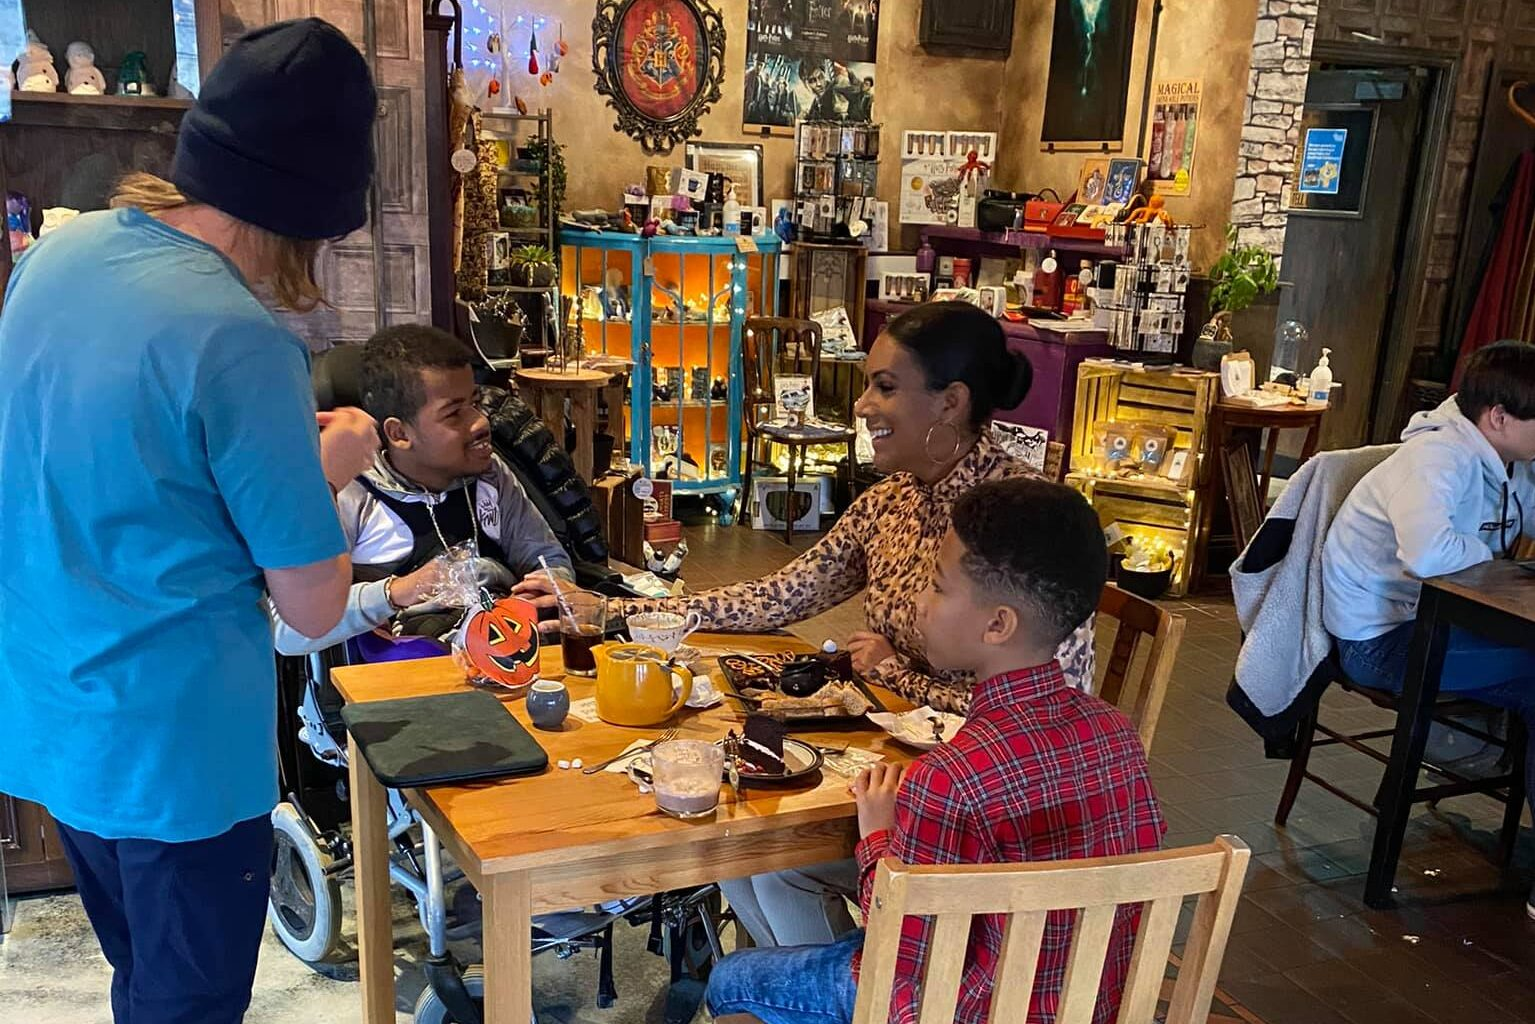 A family enjoys their refreshments in the cafe. A magician performs some tricks for entertainment.